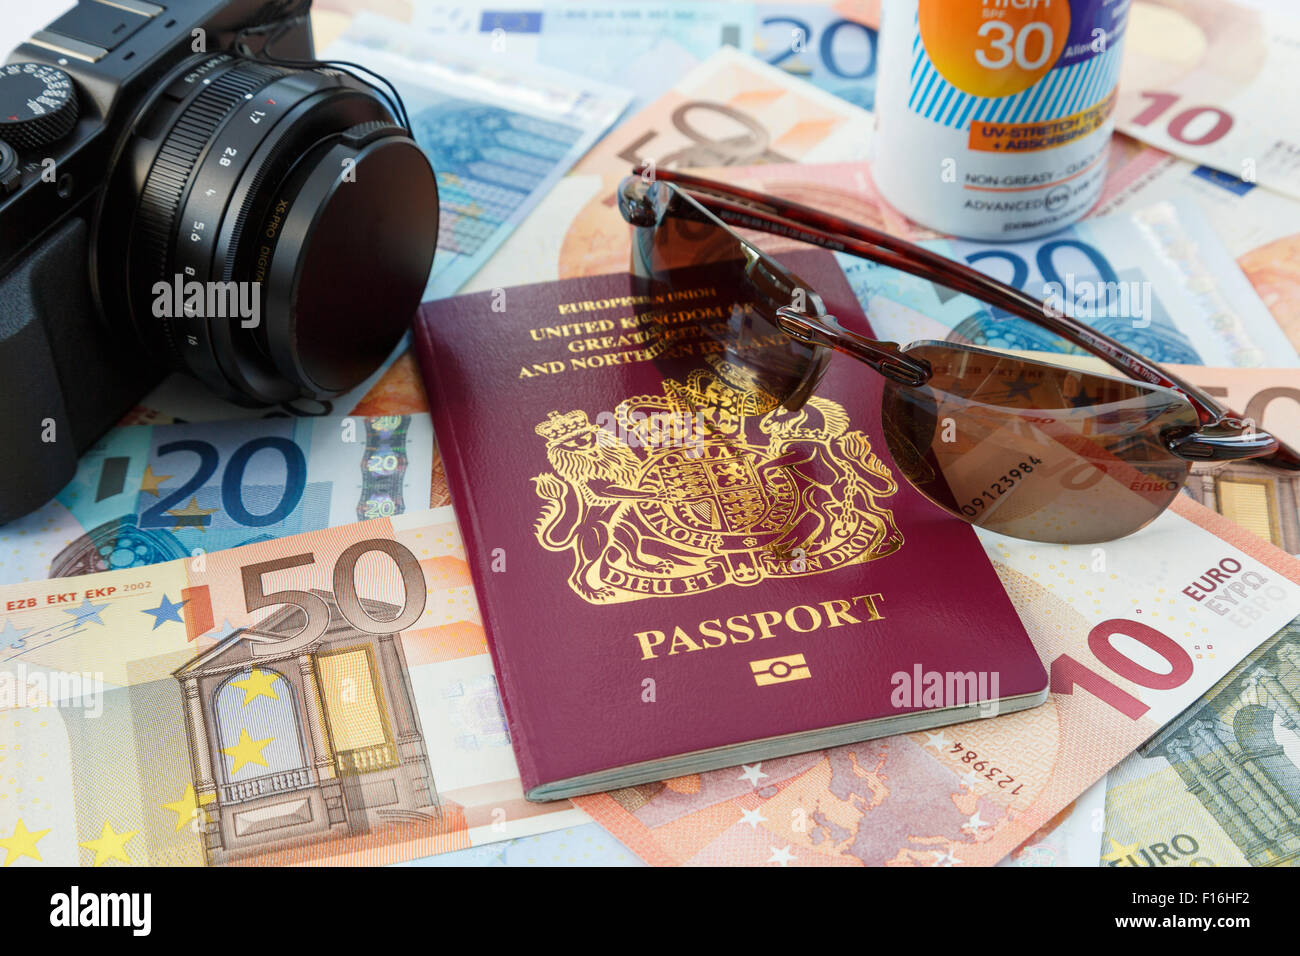 Things for foreign travel with passport currency camera suncream and sunglasses for travelling to Eurozone countries - Stock Image